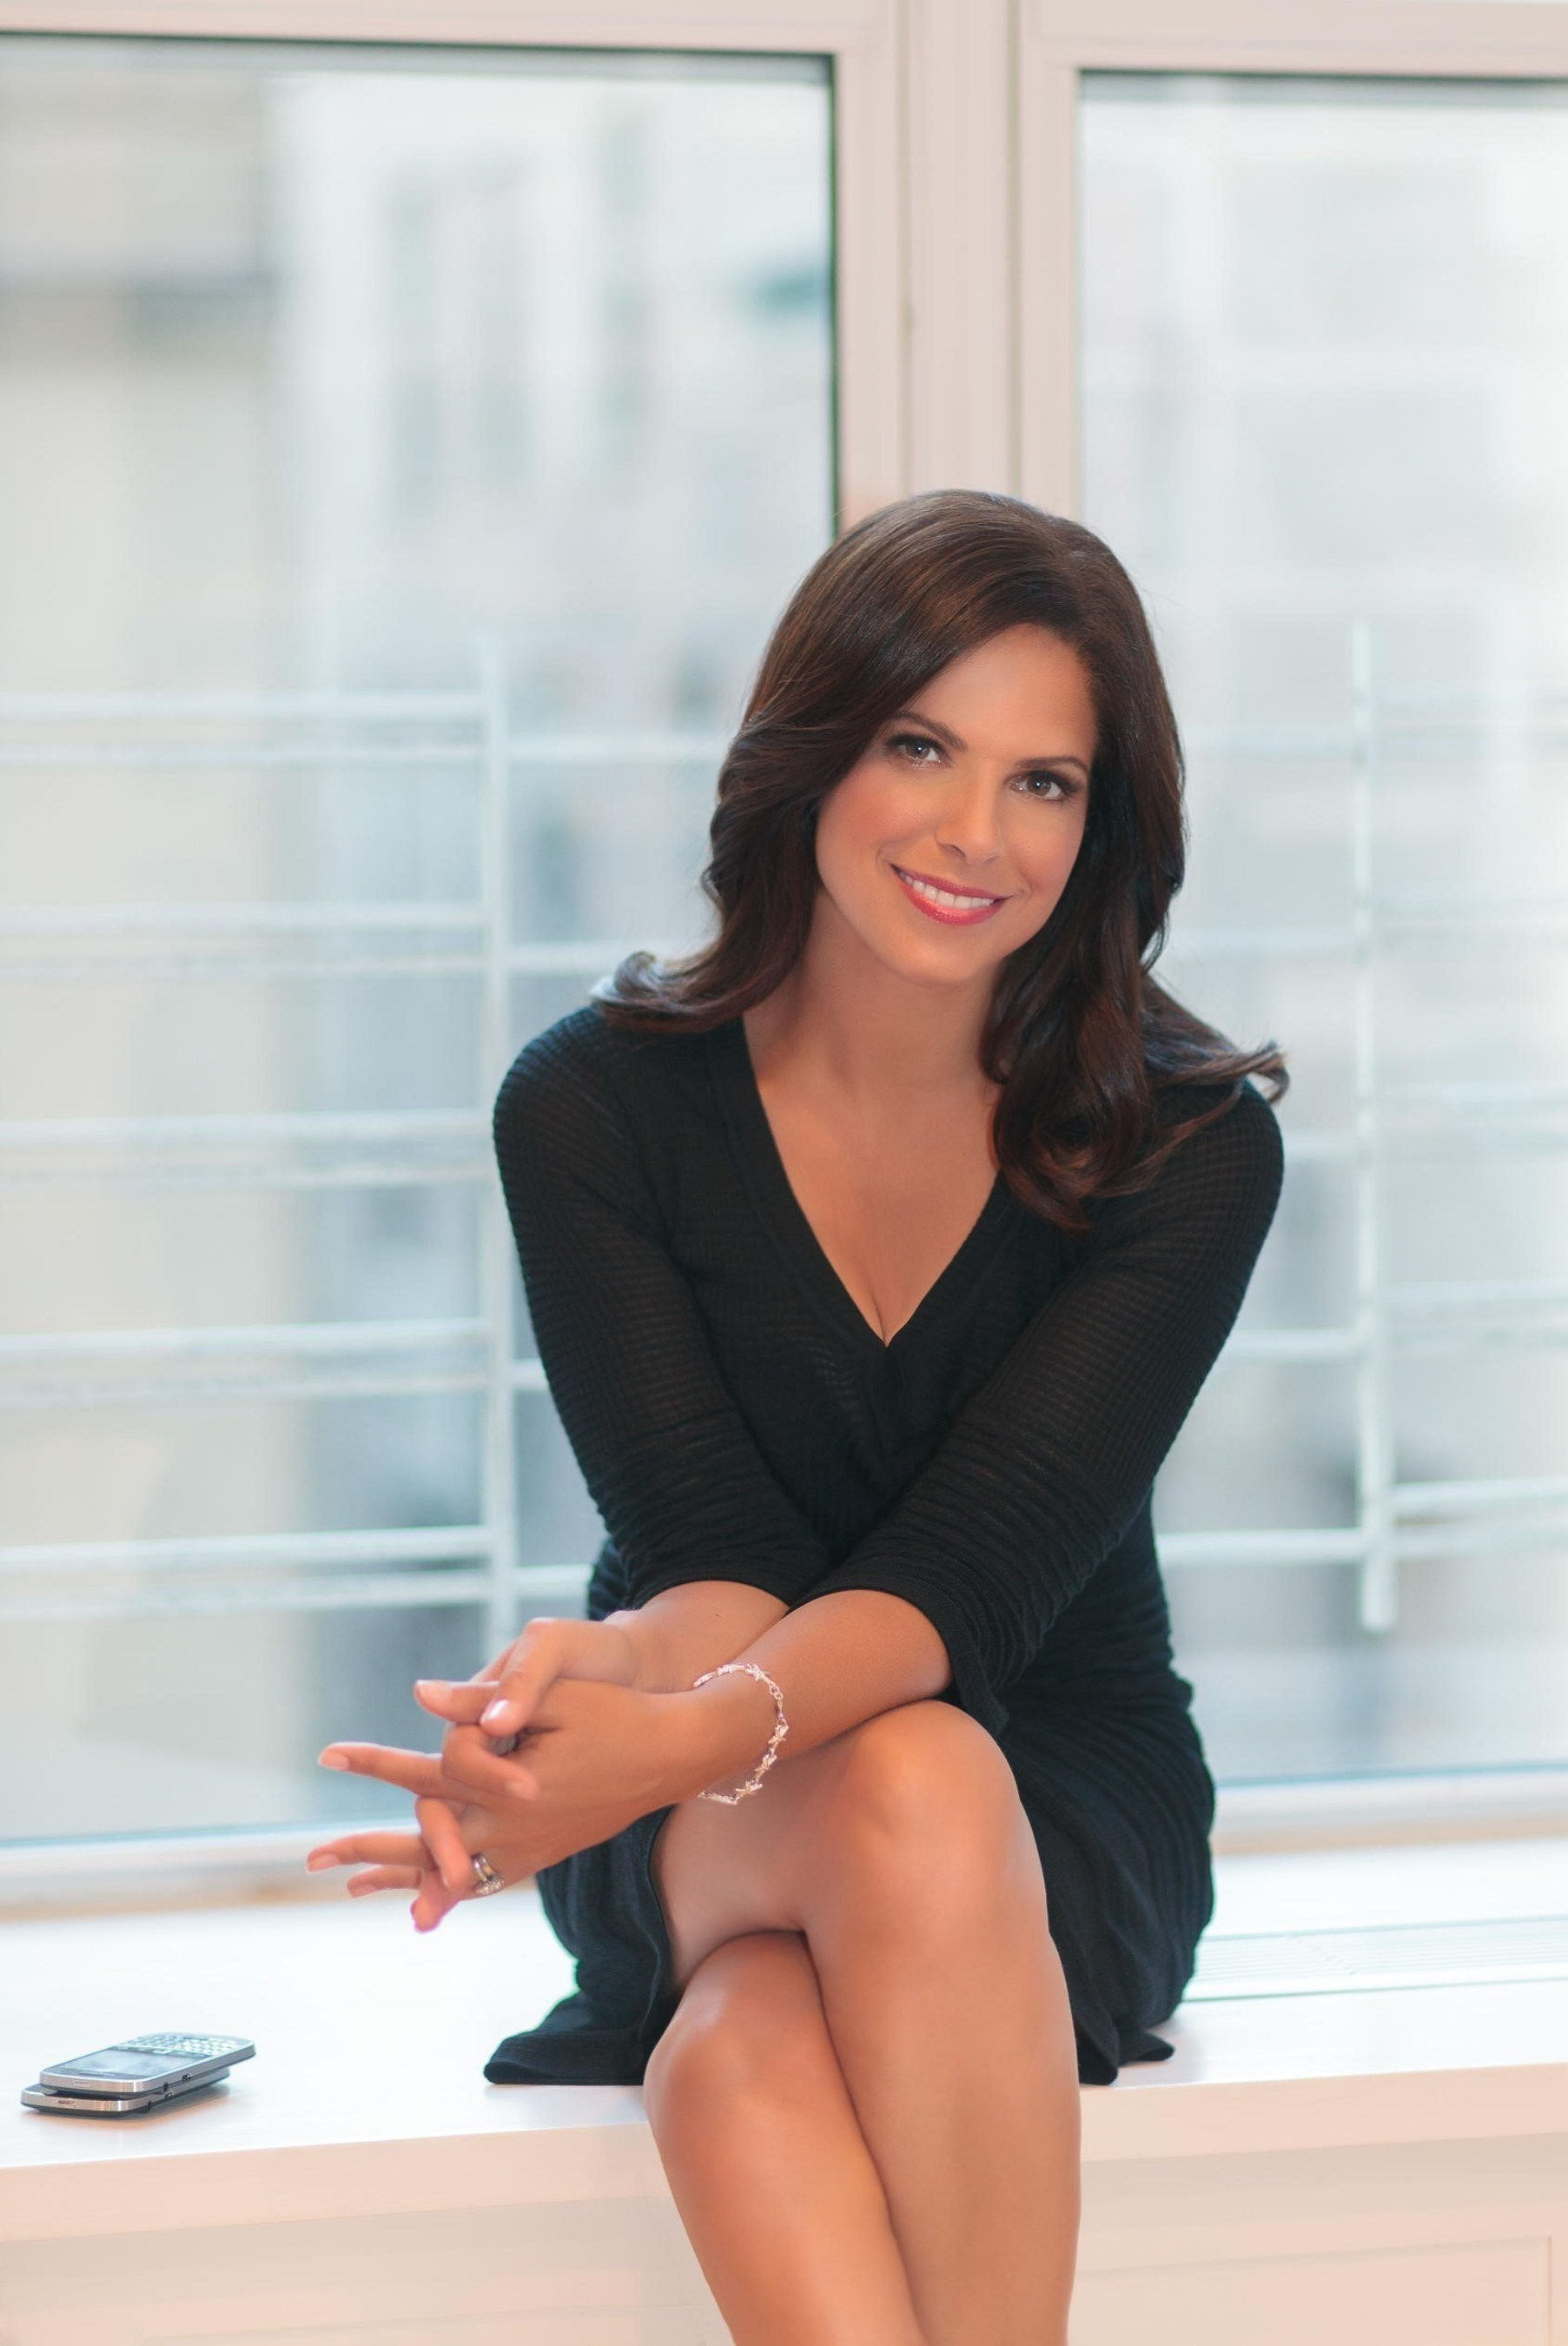 Hearst Television Teams With Award Winning Journalist Soledad O'Brien For Weekly Political Magazine 'Matter of Fact'